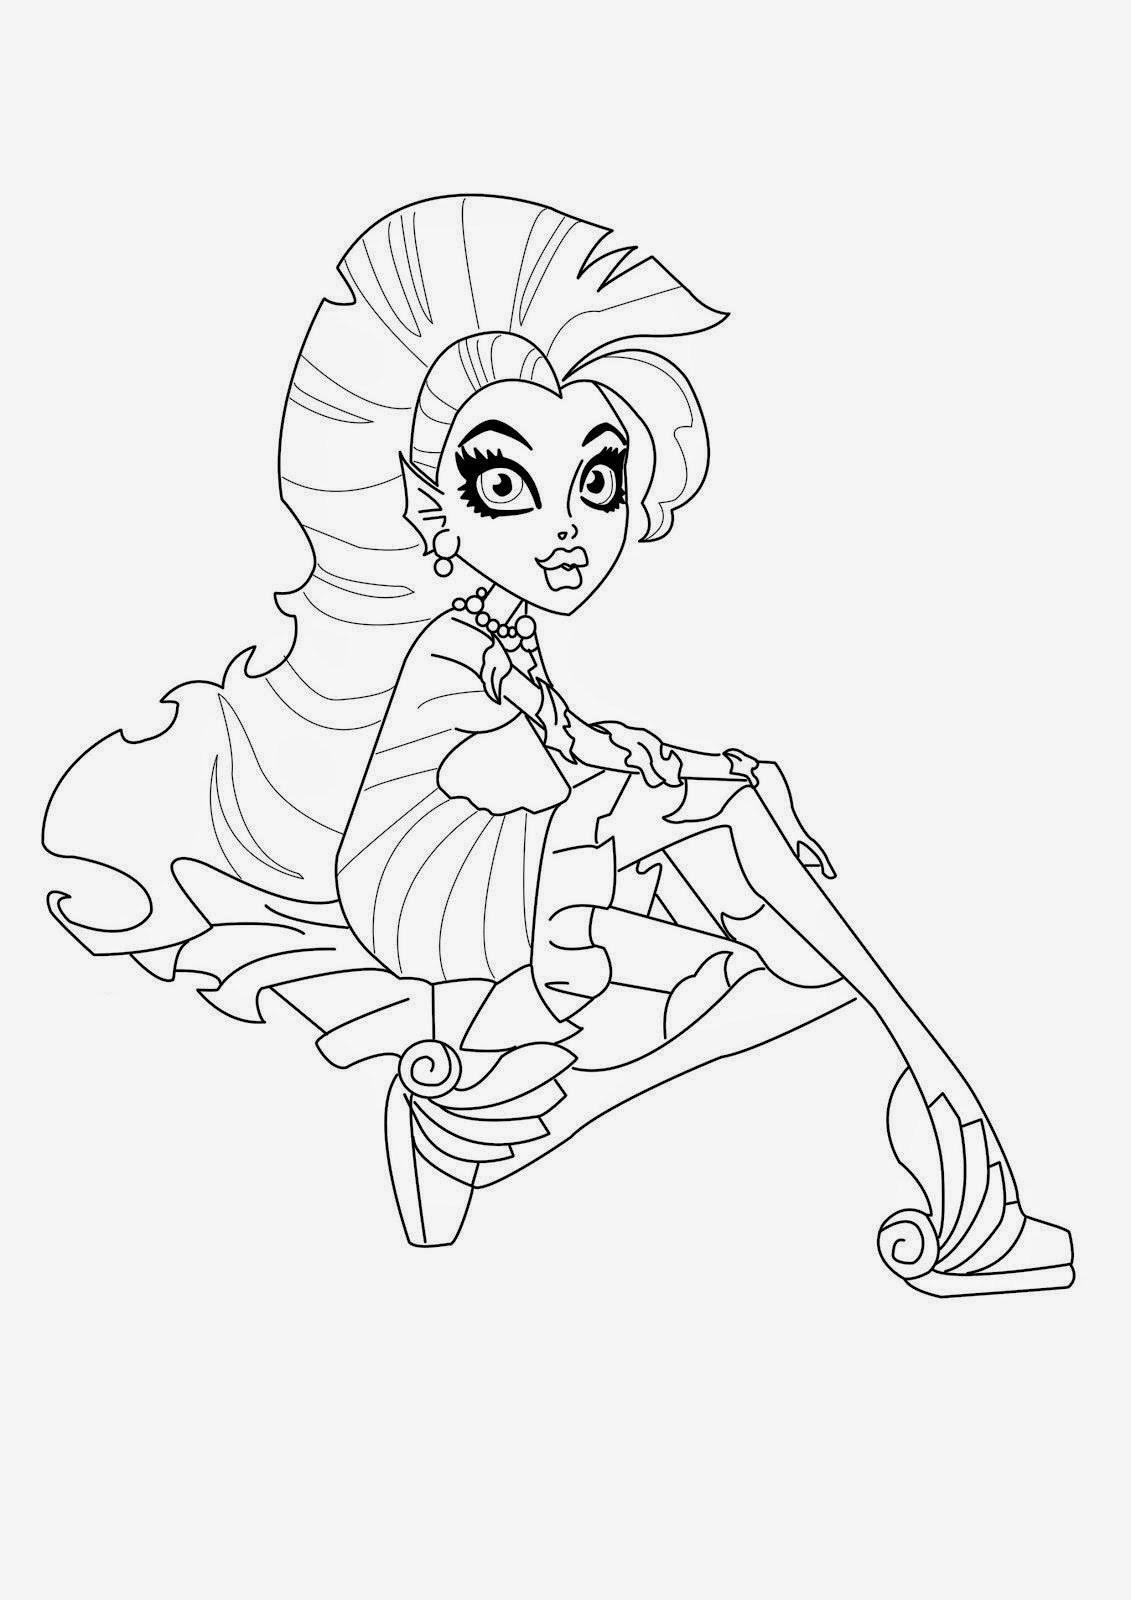 monster high free coloring pages to print coloring pages monster high coloring pages free and printable pages high coloring to print free monster